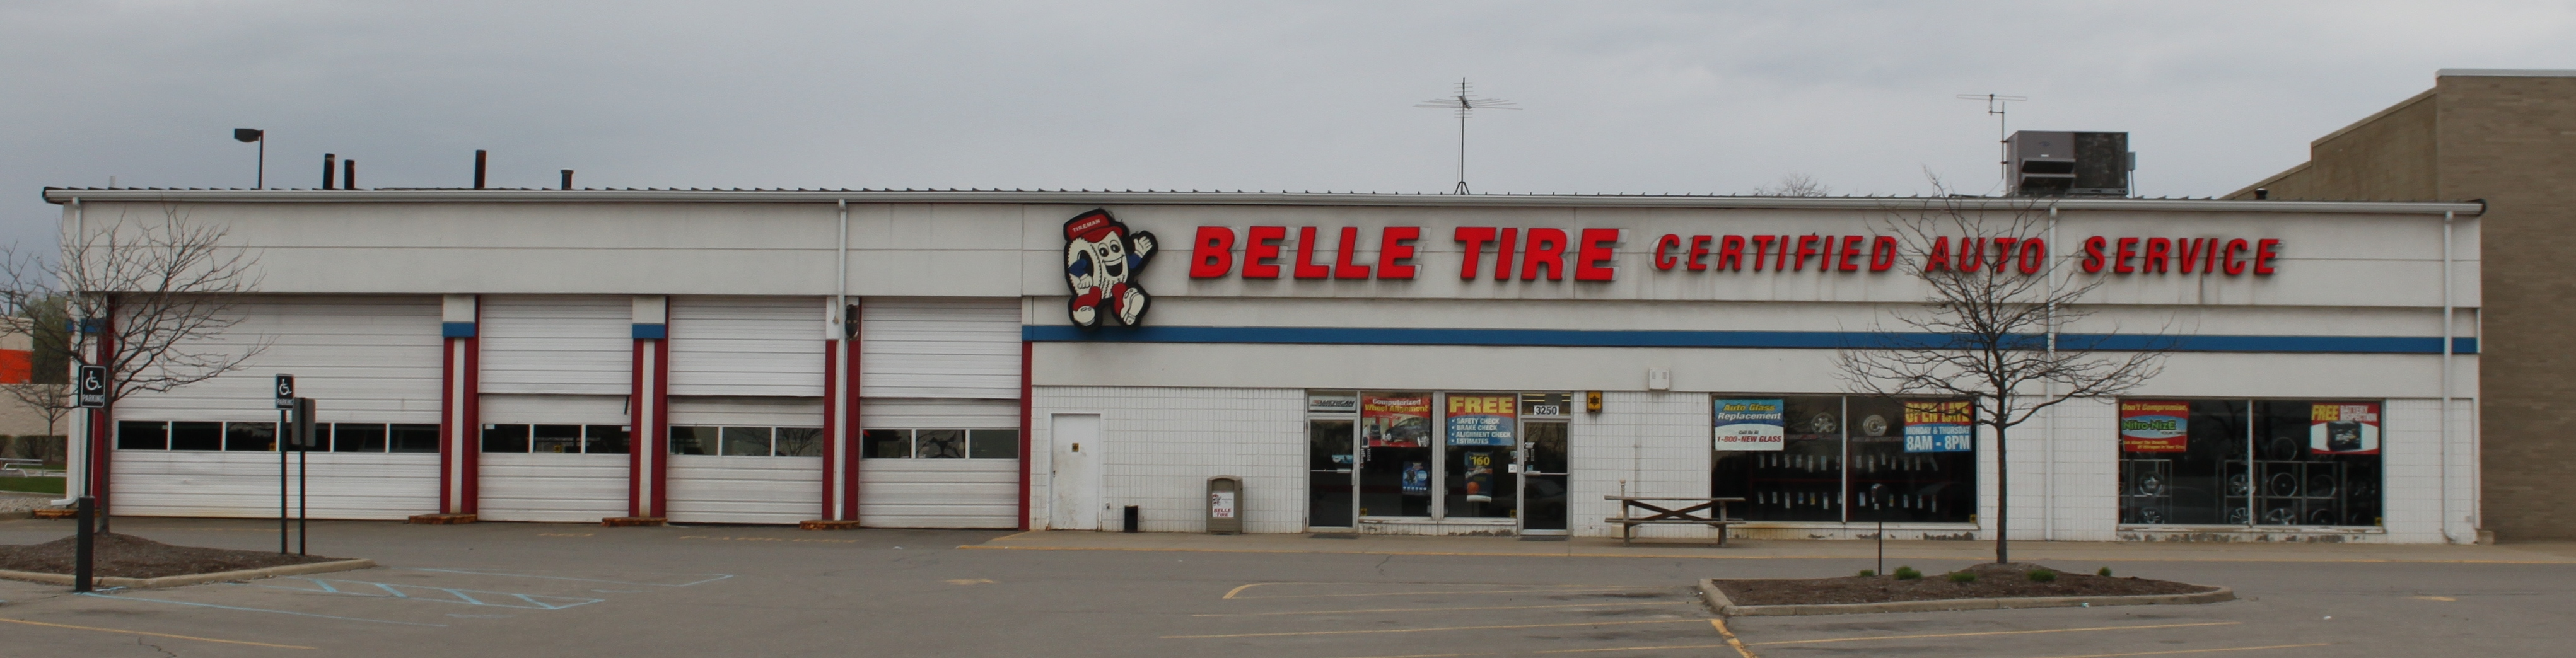 How to Use Belle Tire Coupons Belle Tire is a tire retailer based in Detroit, Michigan. You can find rebates, special offers and discounted pricing on their website.